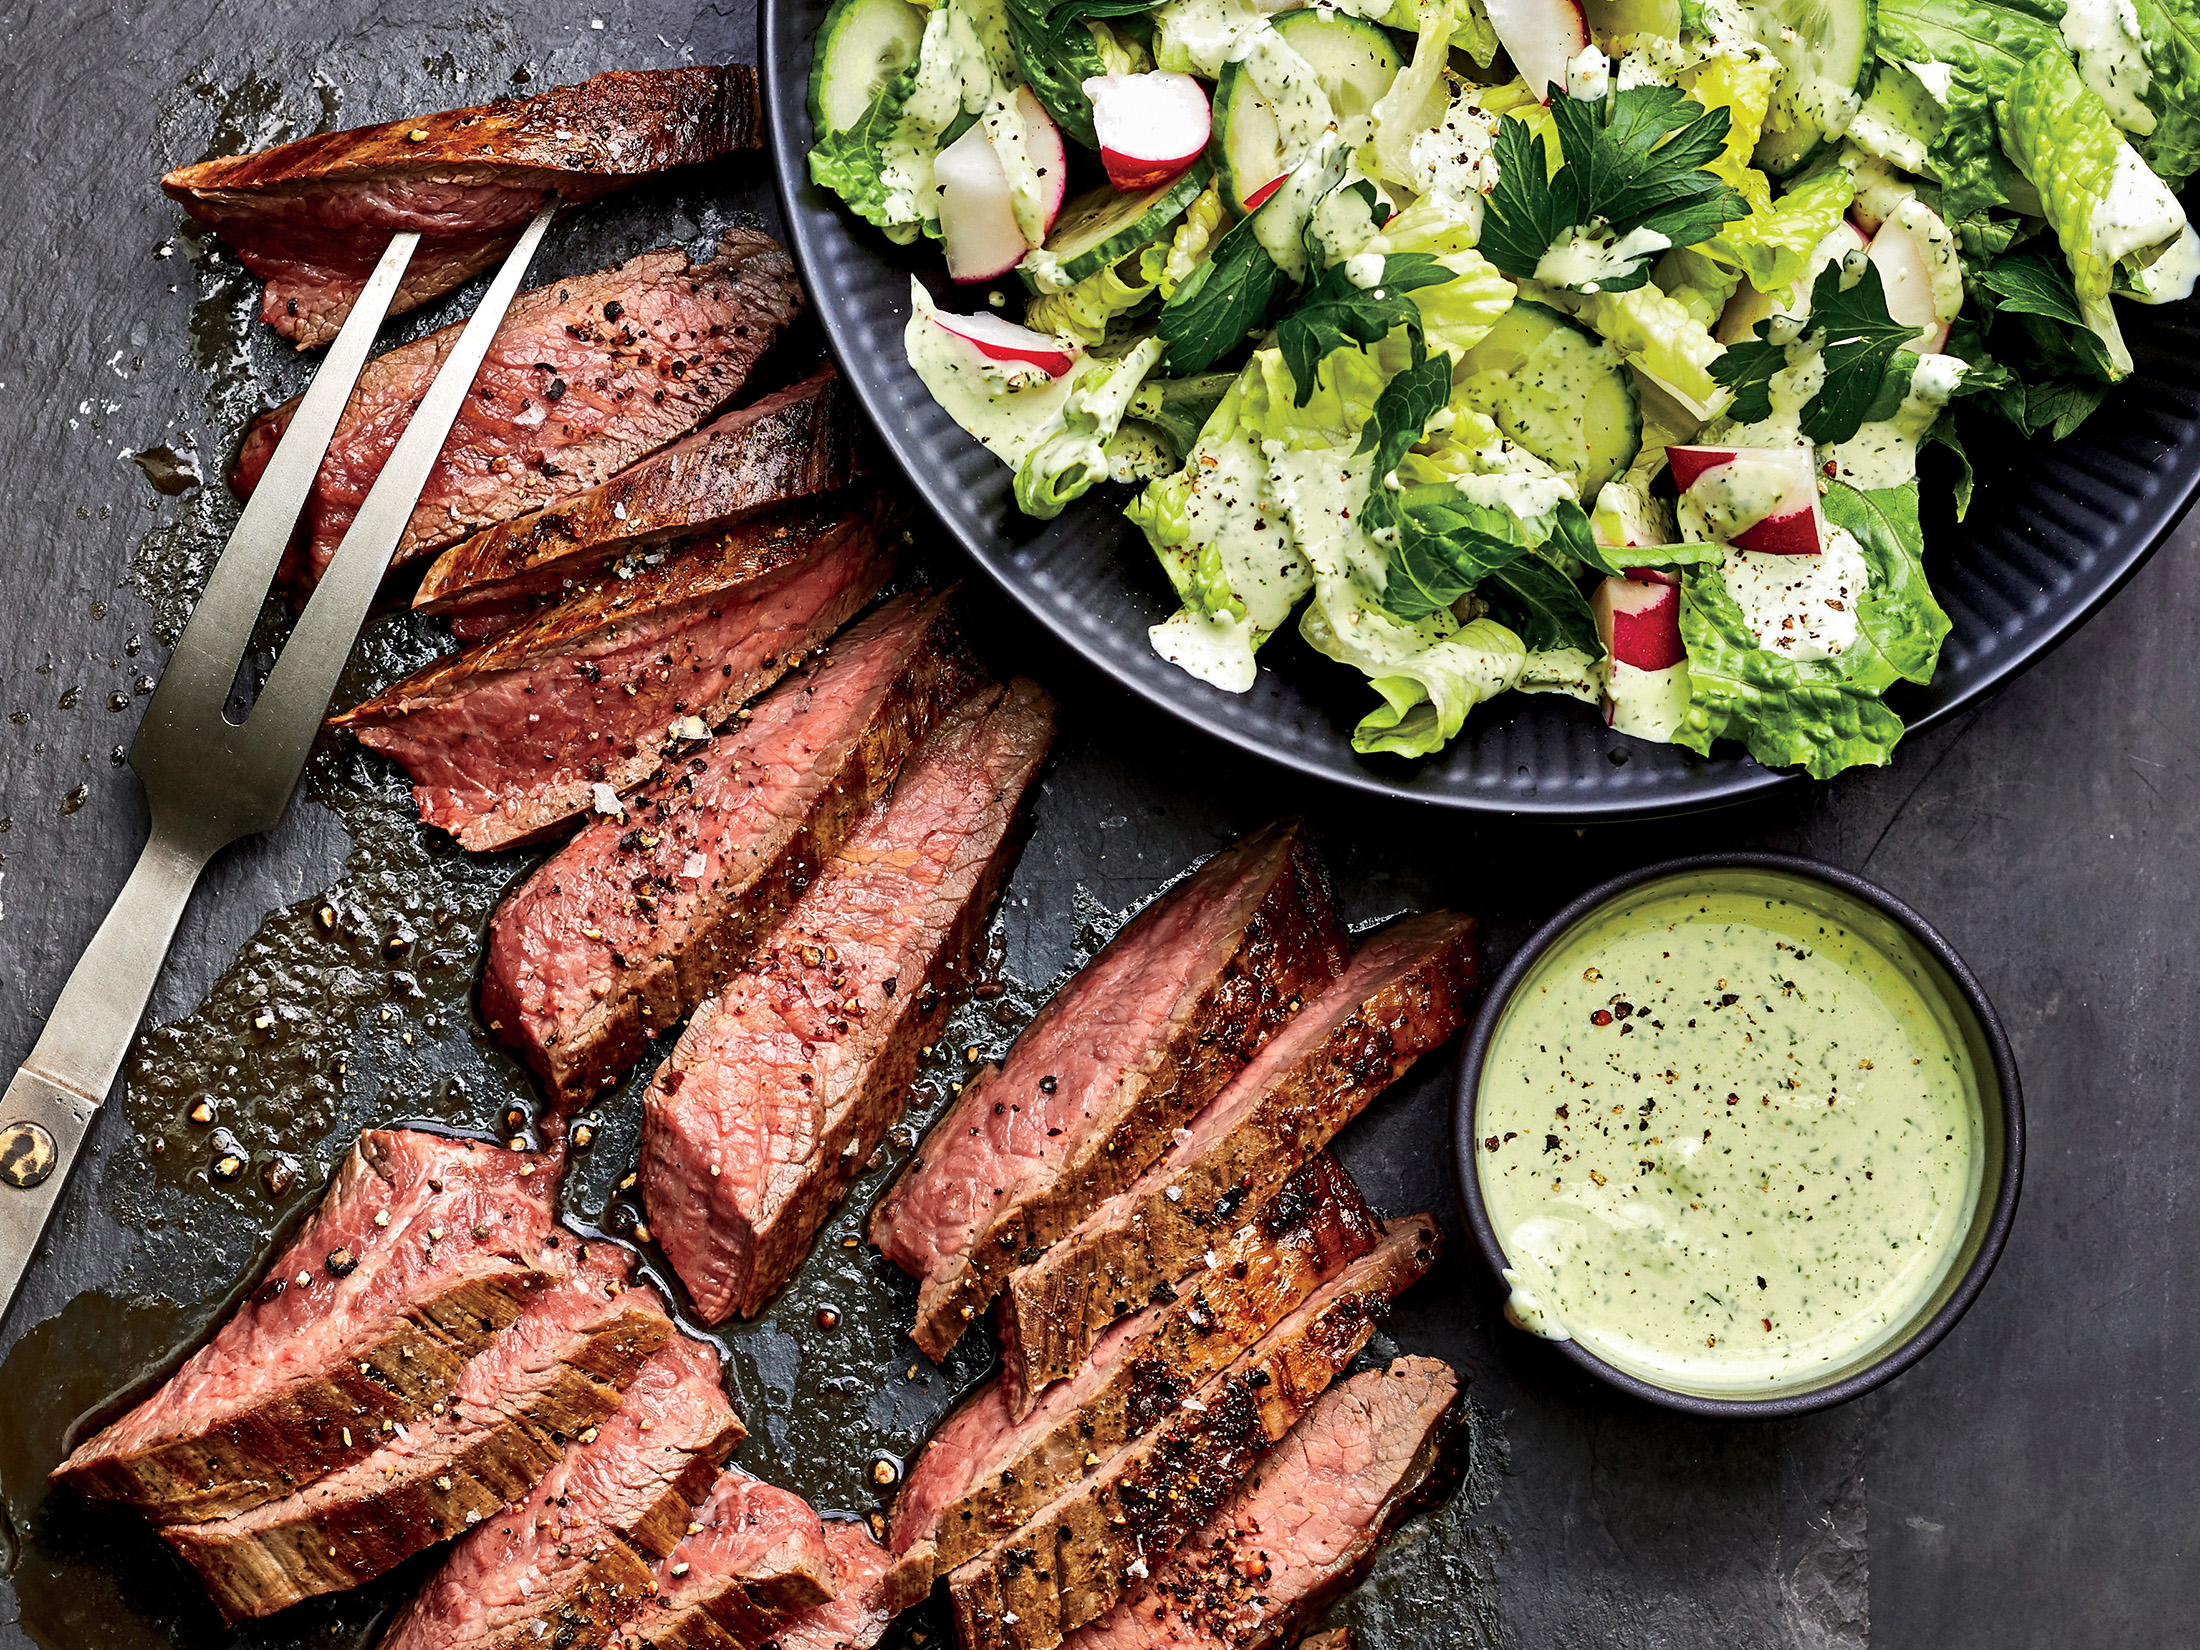 Flank Steak and Vegetables with Green Goddess Sauce